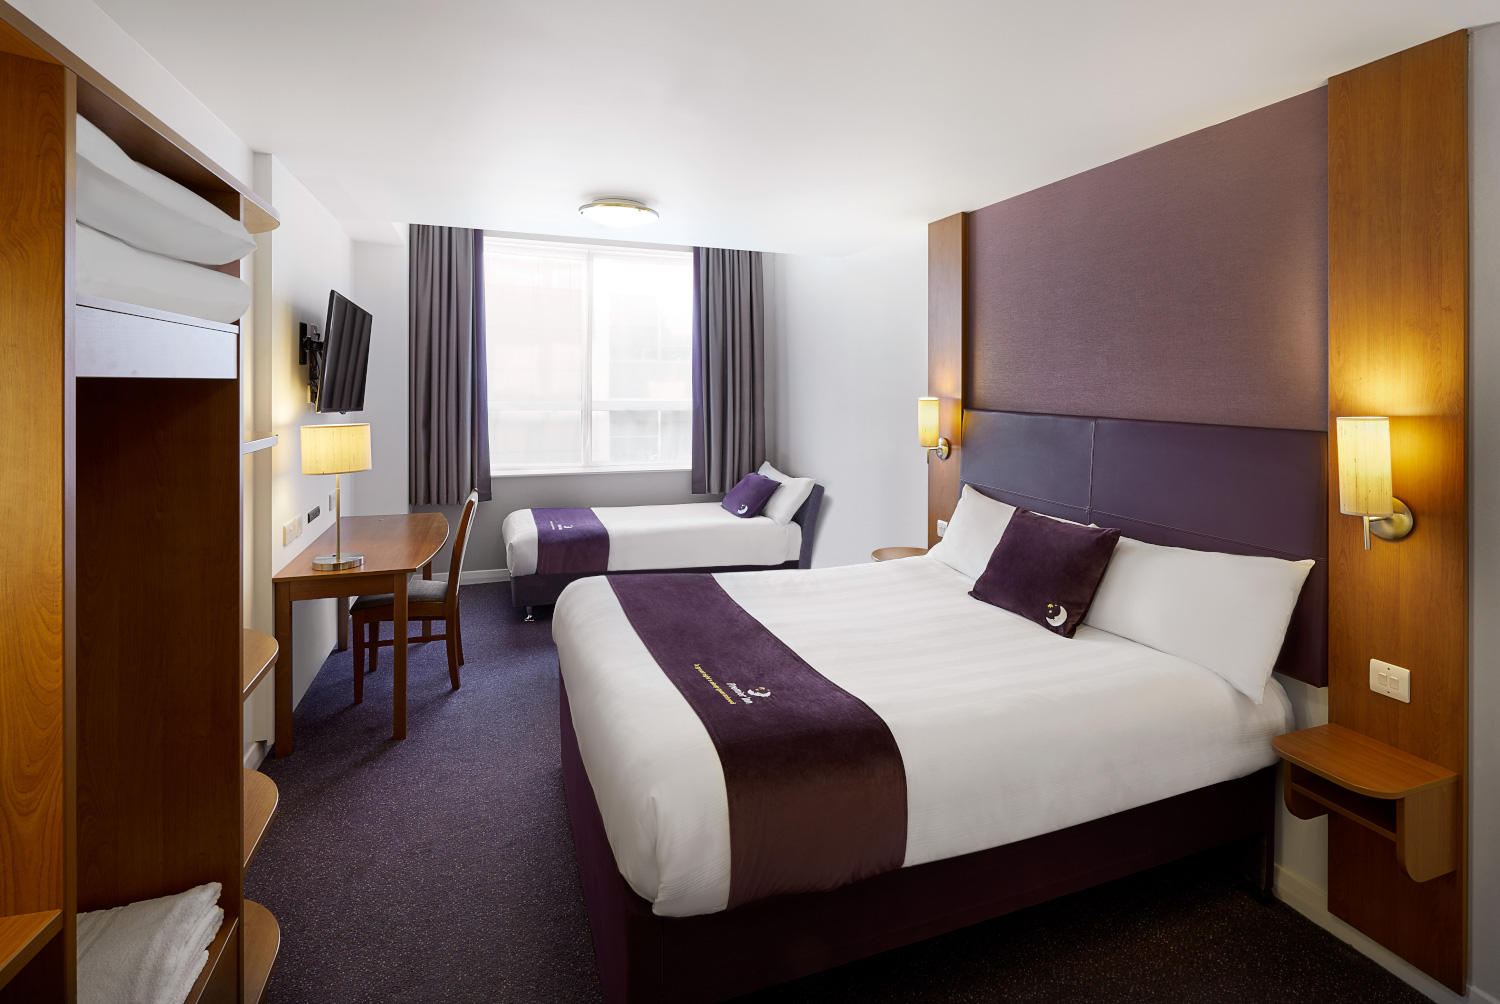 Premier Inn family room Premier Inn Lowestoft hotel Lowestoft 03333 211281